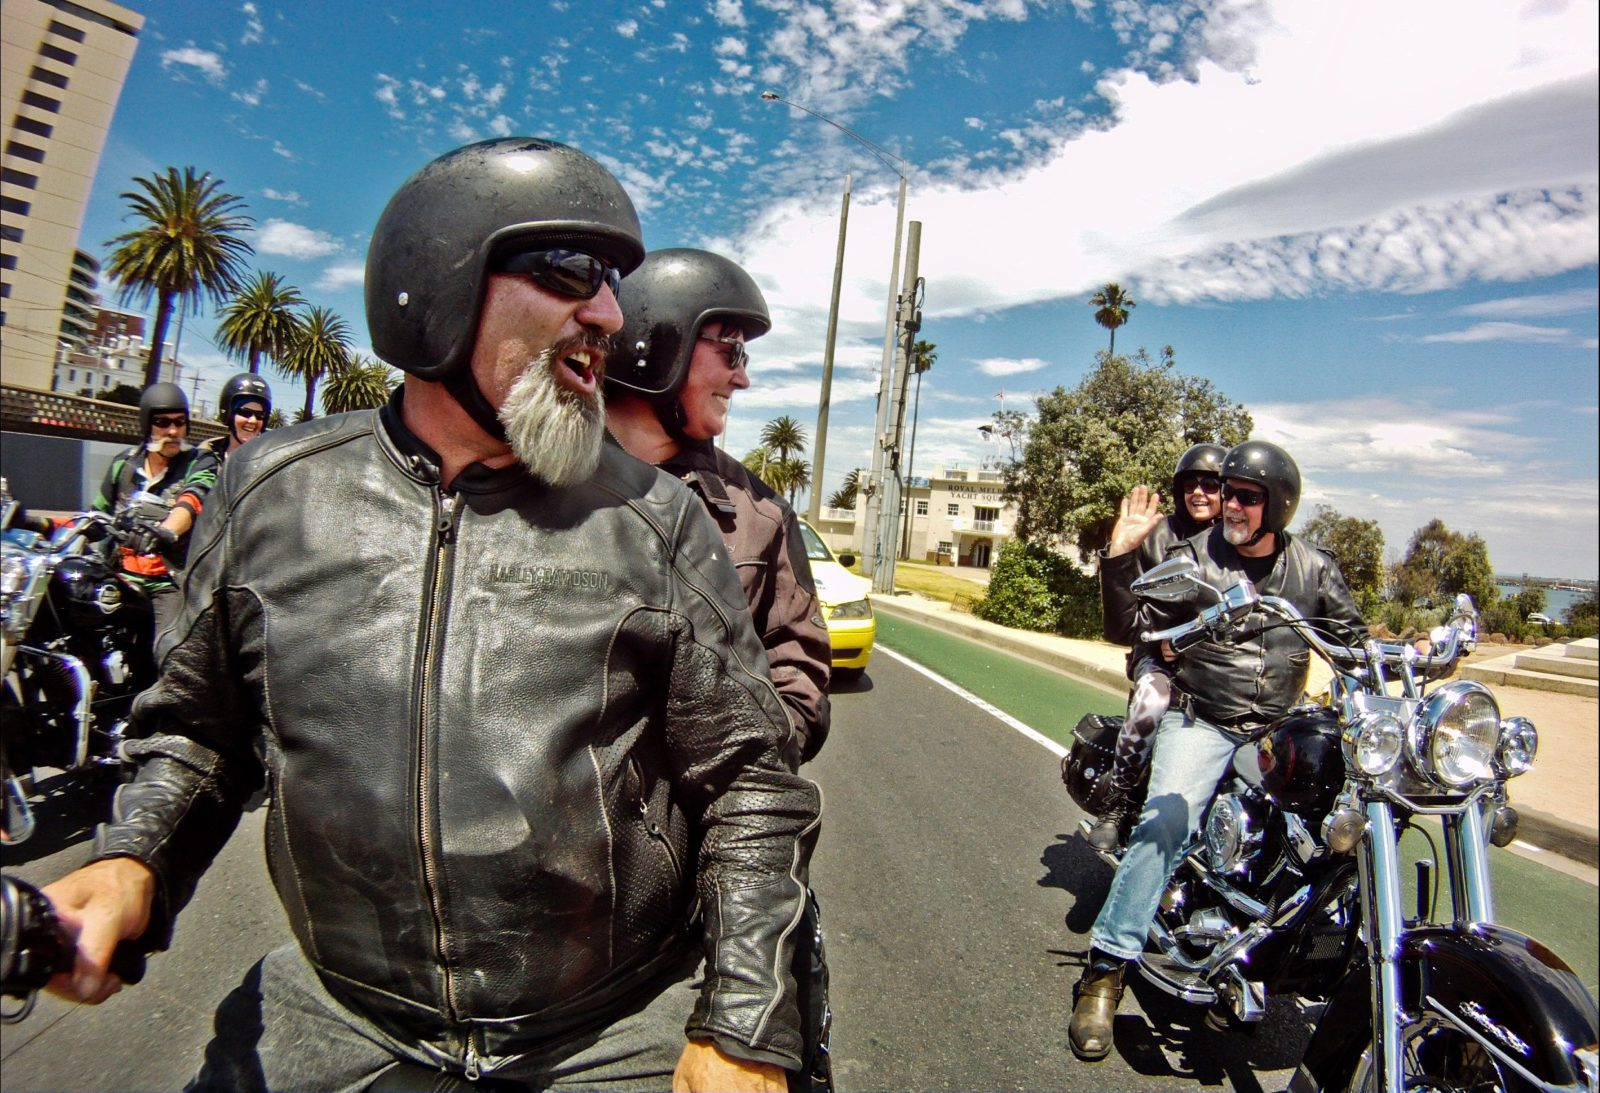 Sharing a Harley Davidson Ride with friends